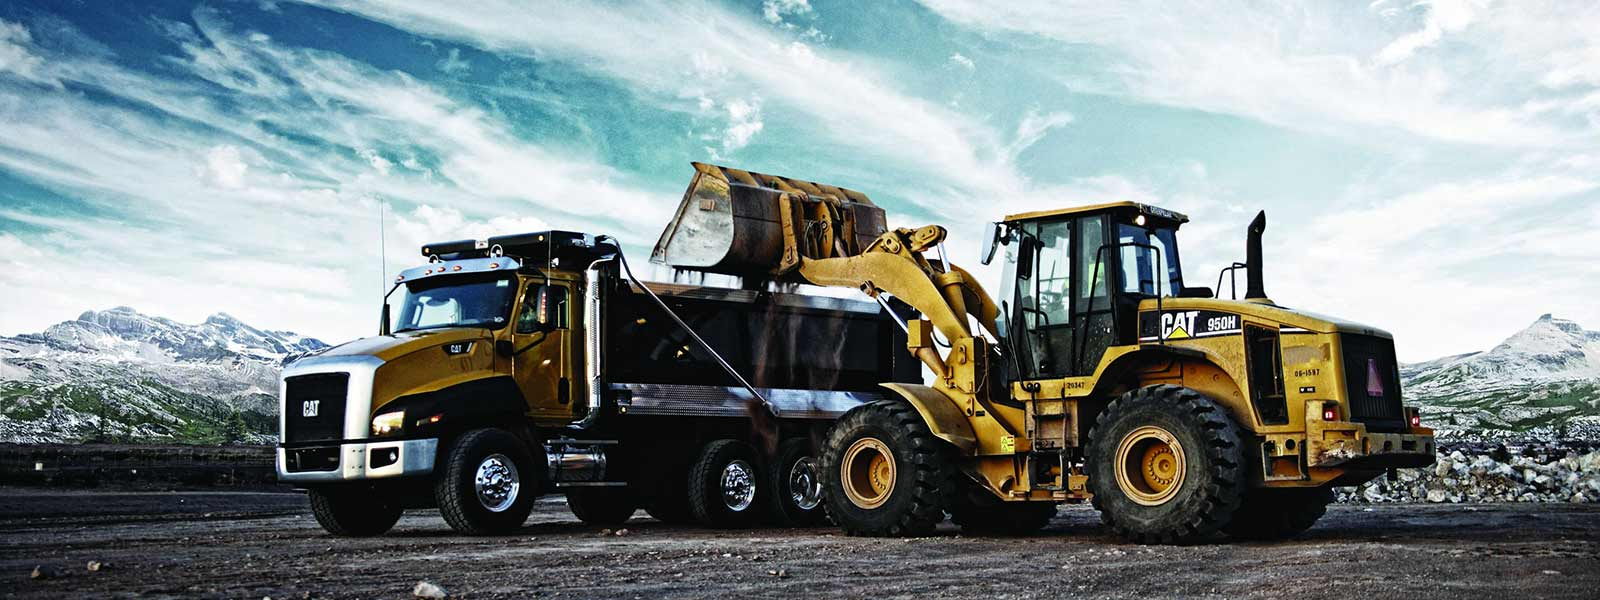 Caterpillar Inc. is Digitally Transforming to Drive Business